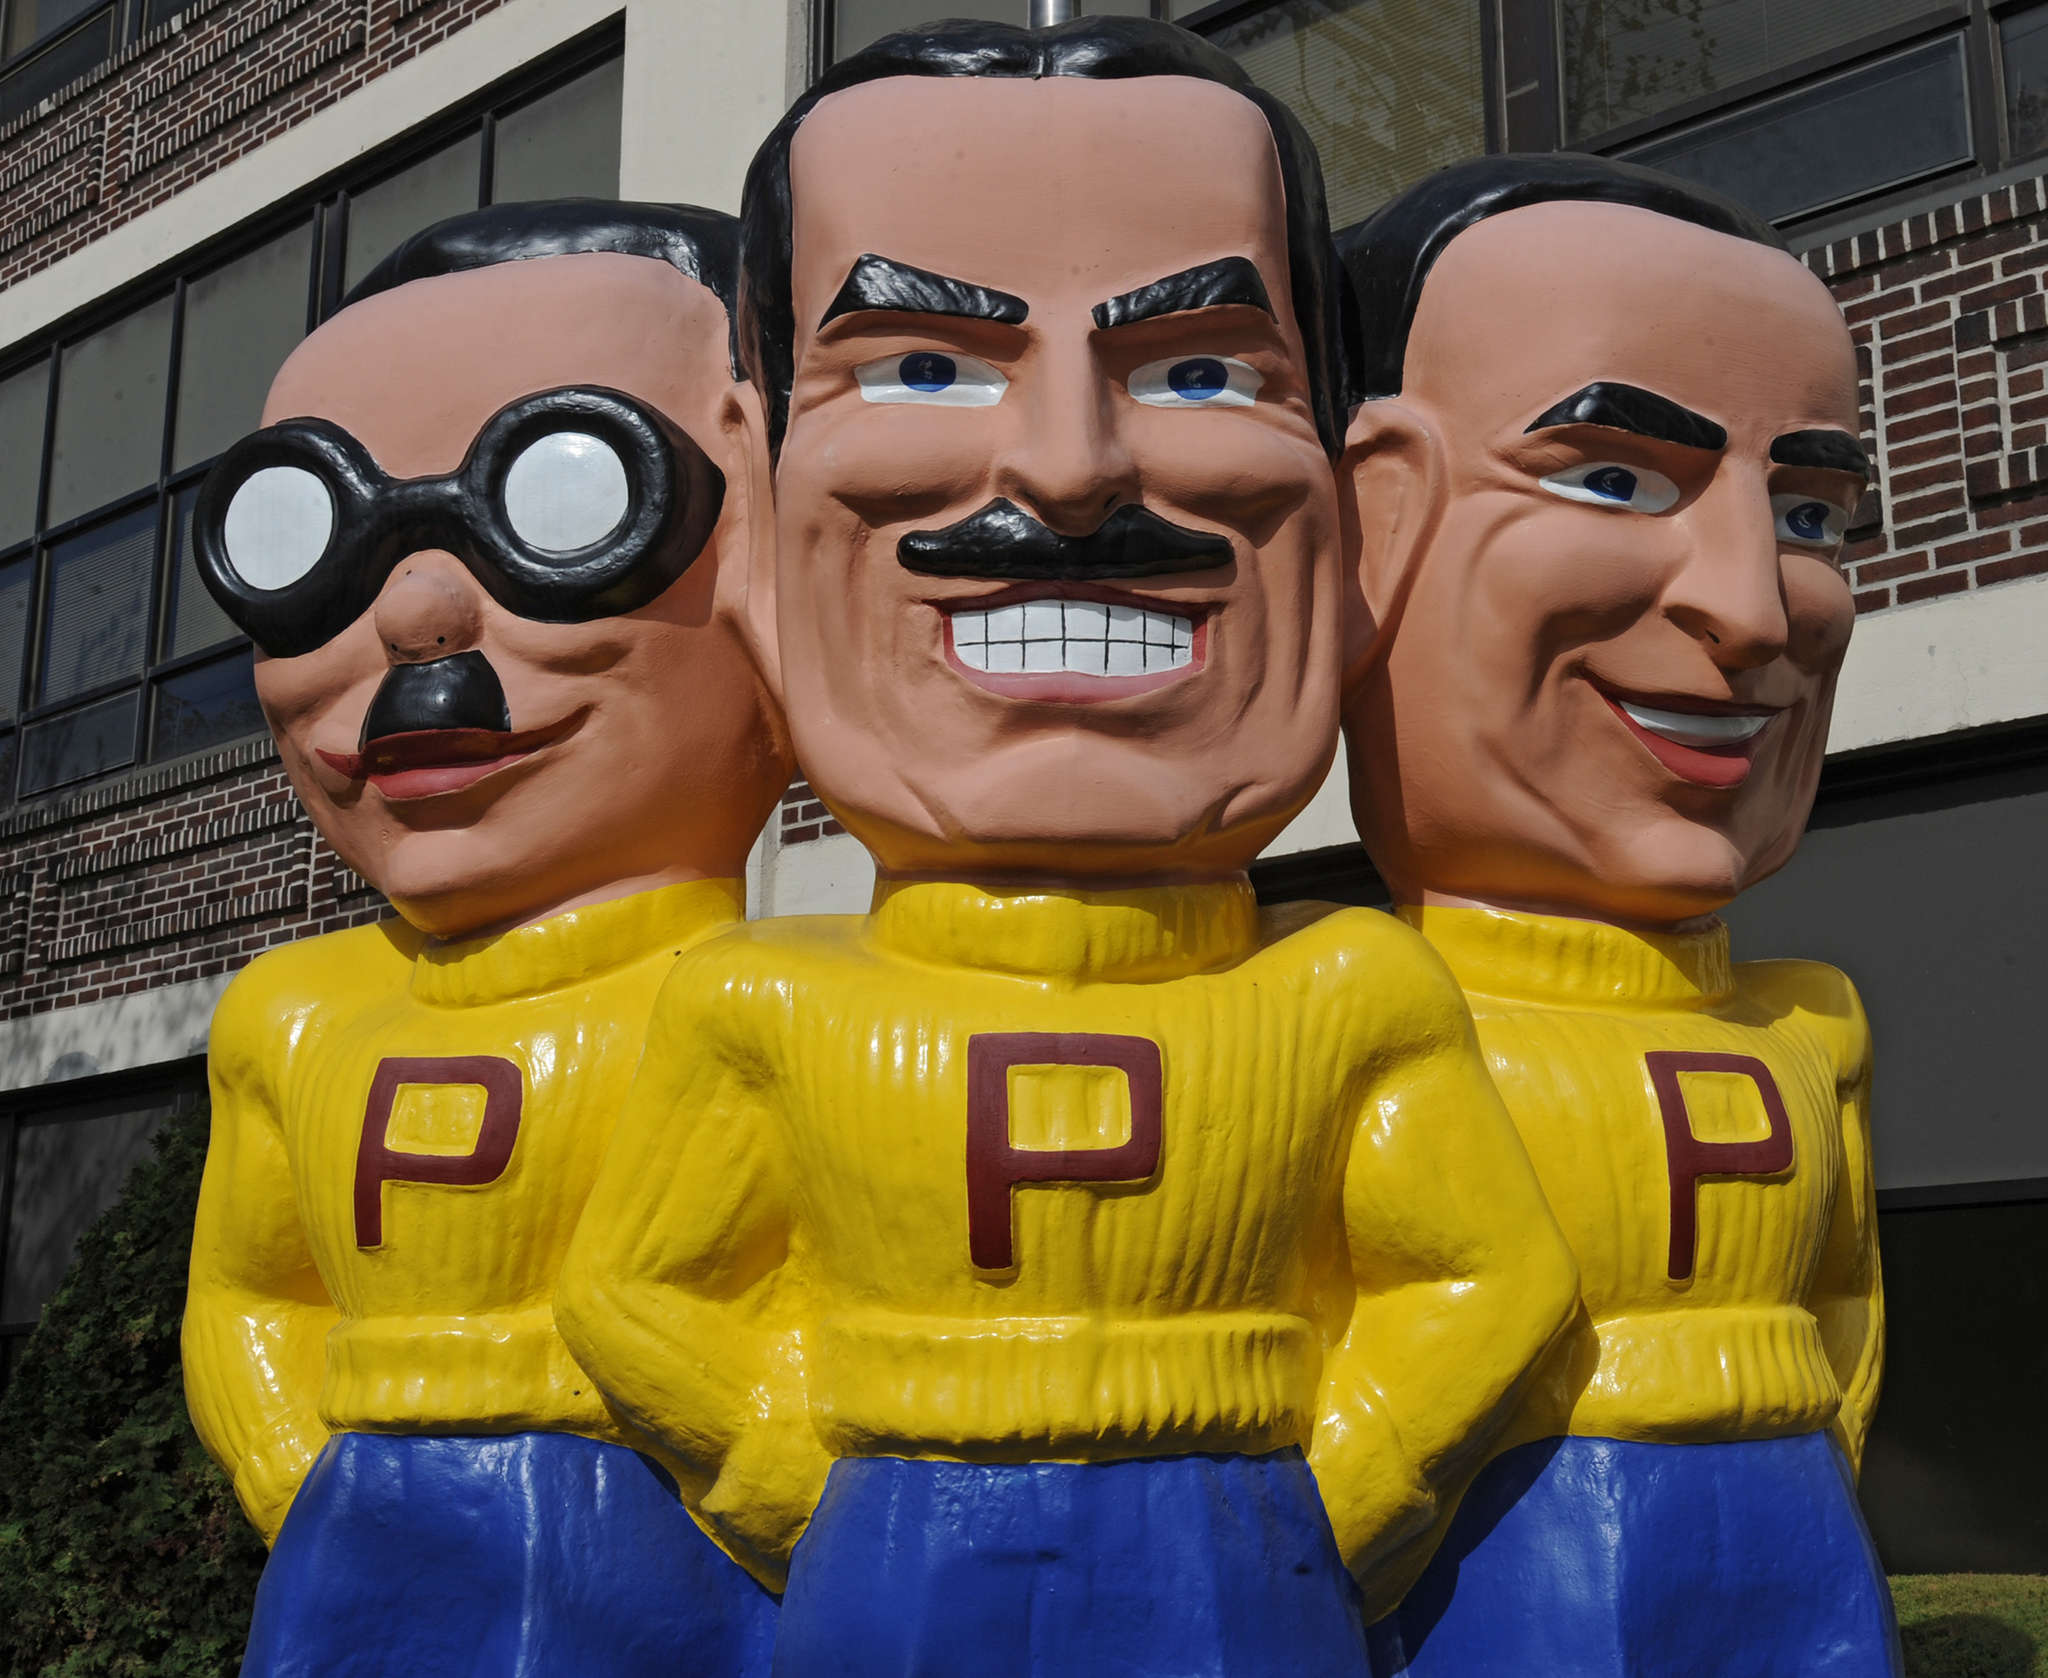 Pep Boys employs 14,000, including 500 at its Allegheny Avenue headquarters, shown . CLEM MURRAY / Staff Photographer